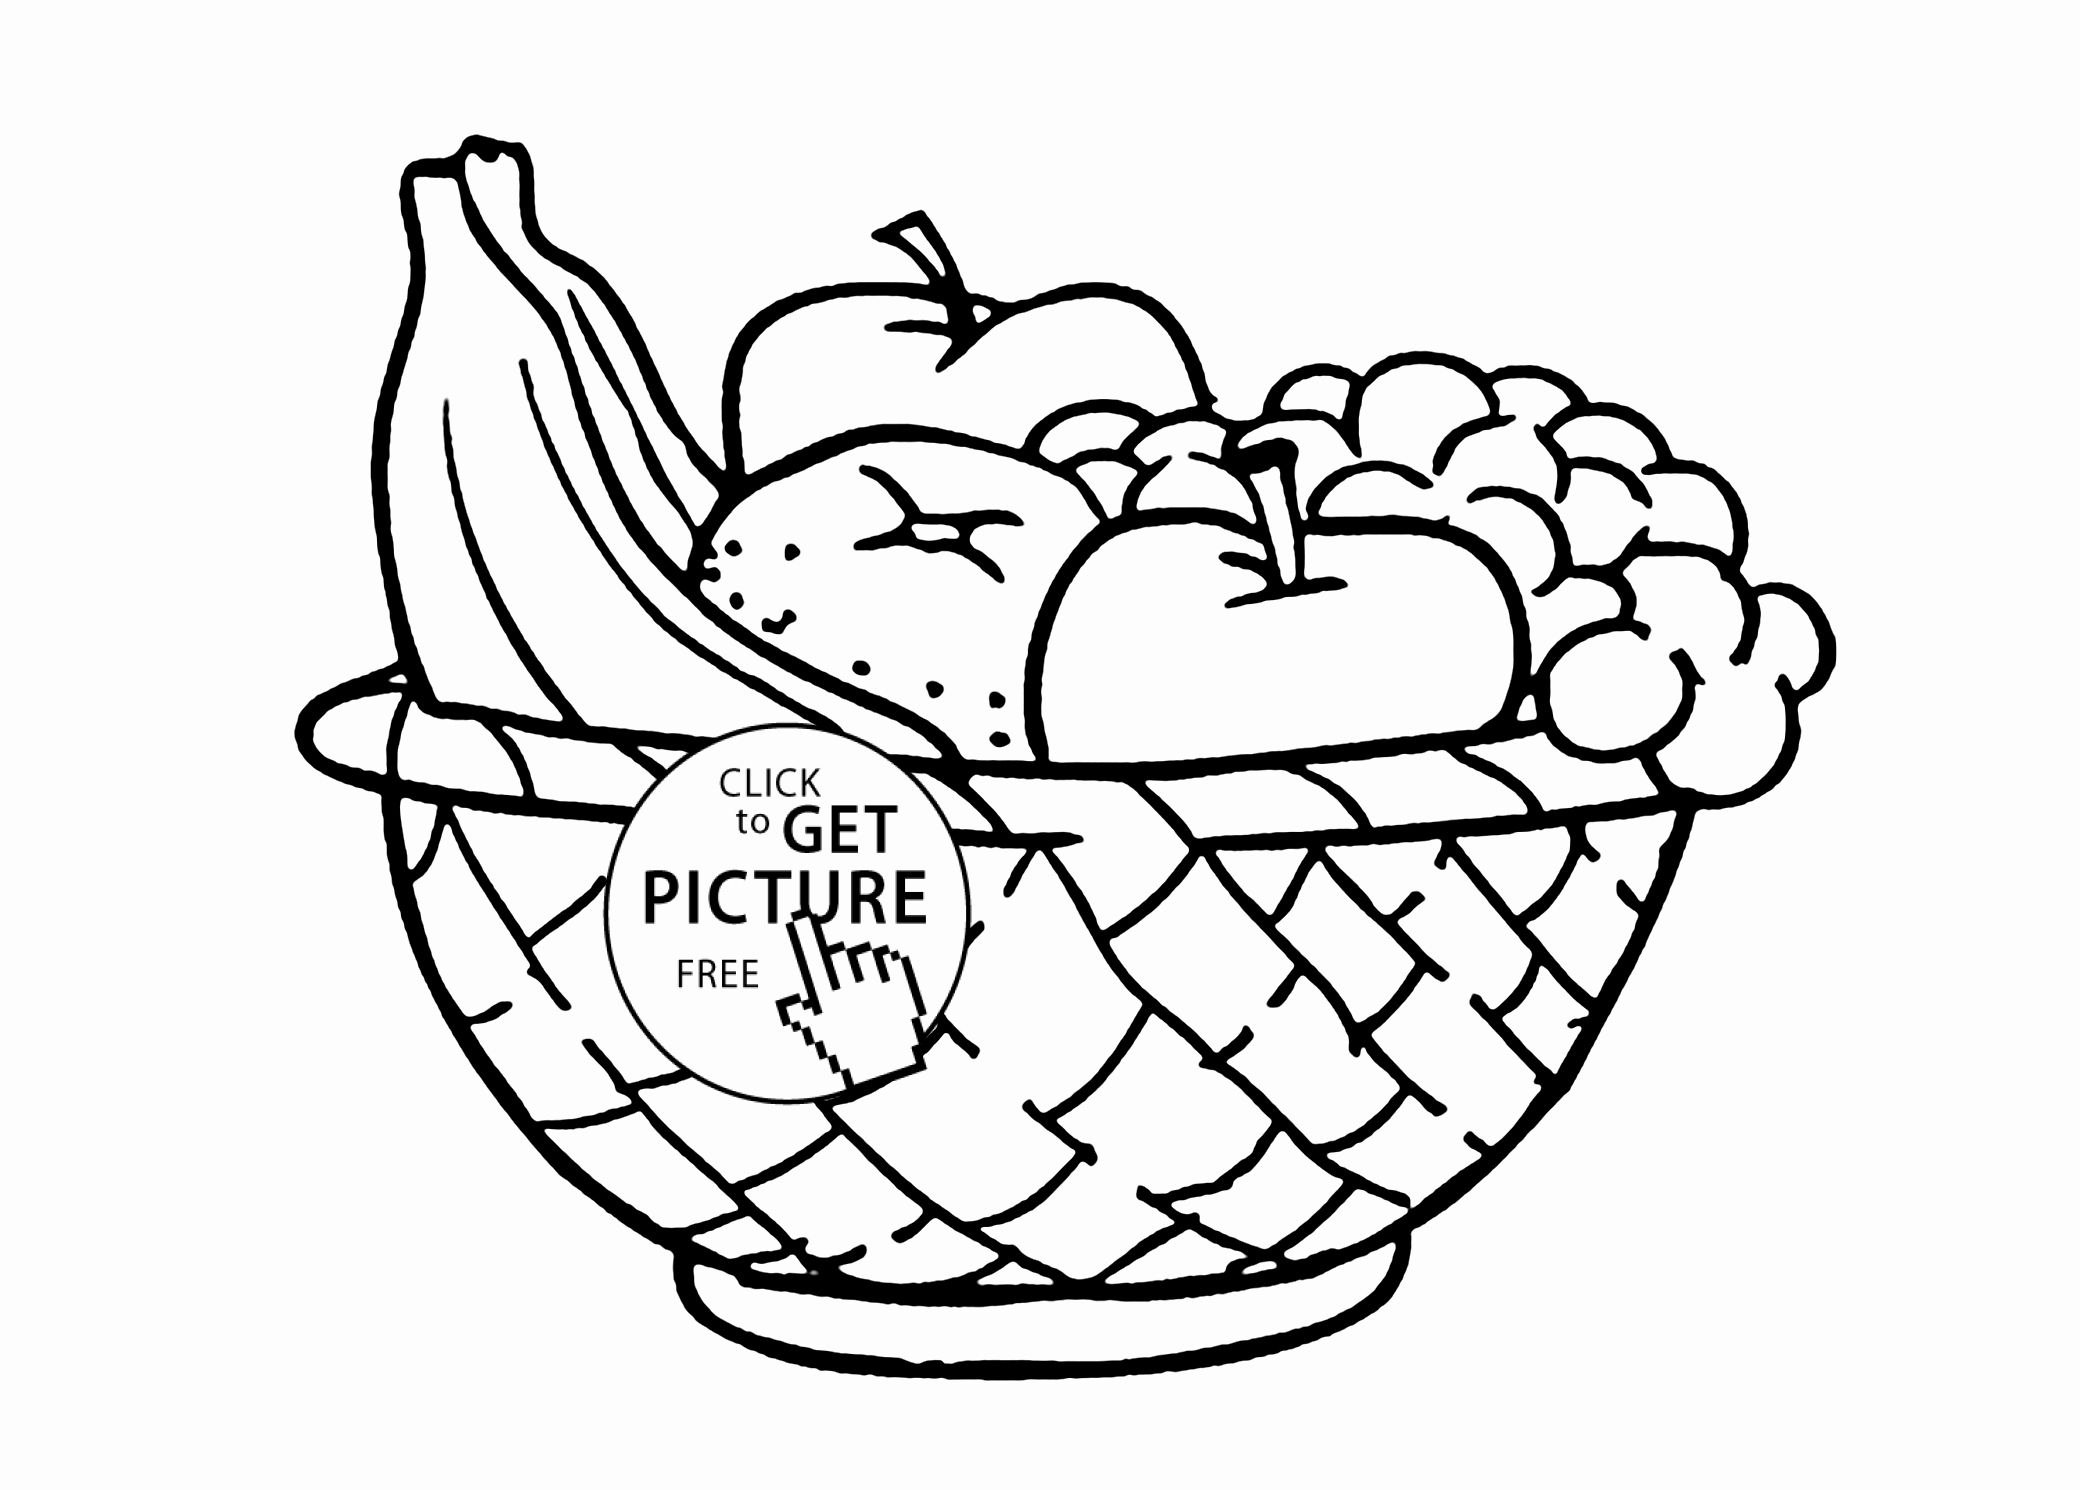 Coloring Fruits Cartoon Inspirational Of Fruit Picnic Coloring Pages Sabadaphnecottage Fruit Basket Drawing Fruits Drawing Fruit Coloring Pages